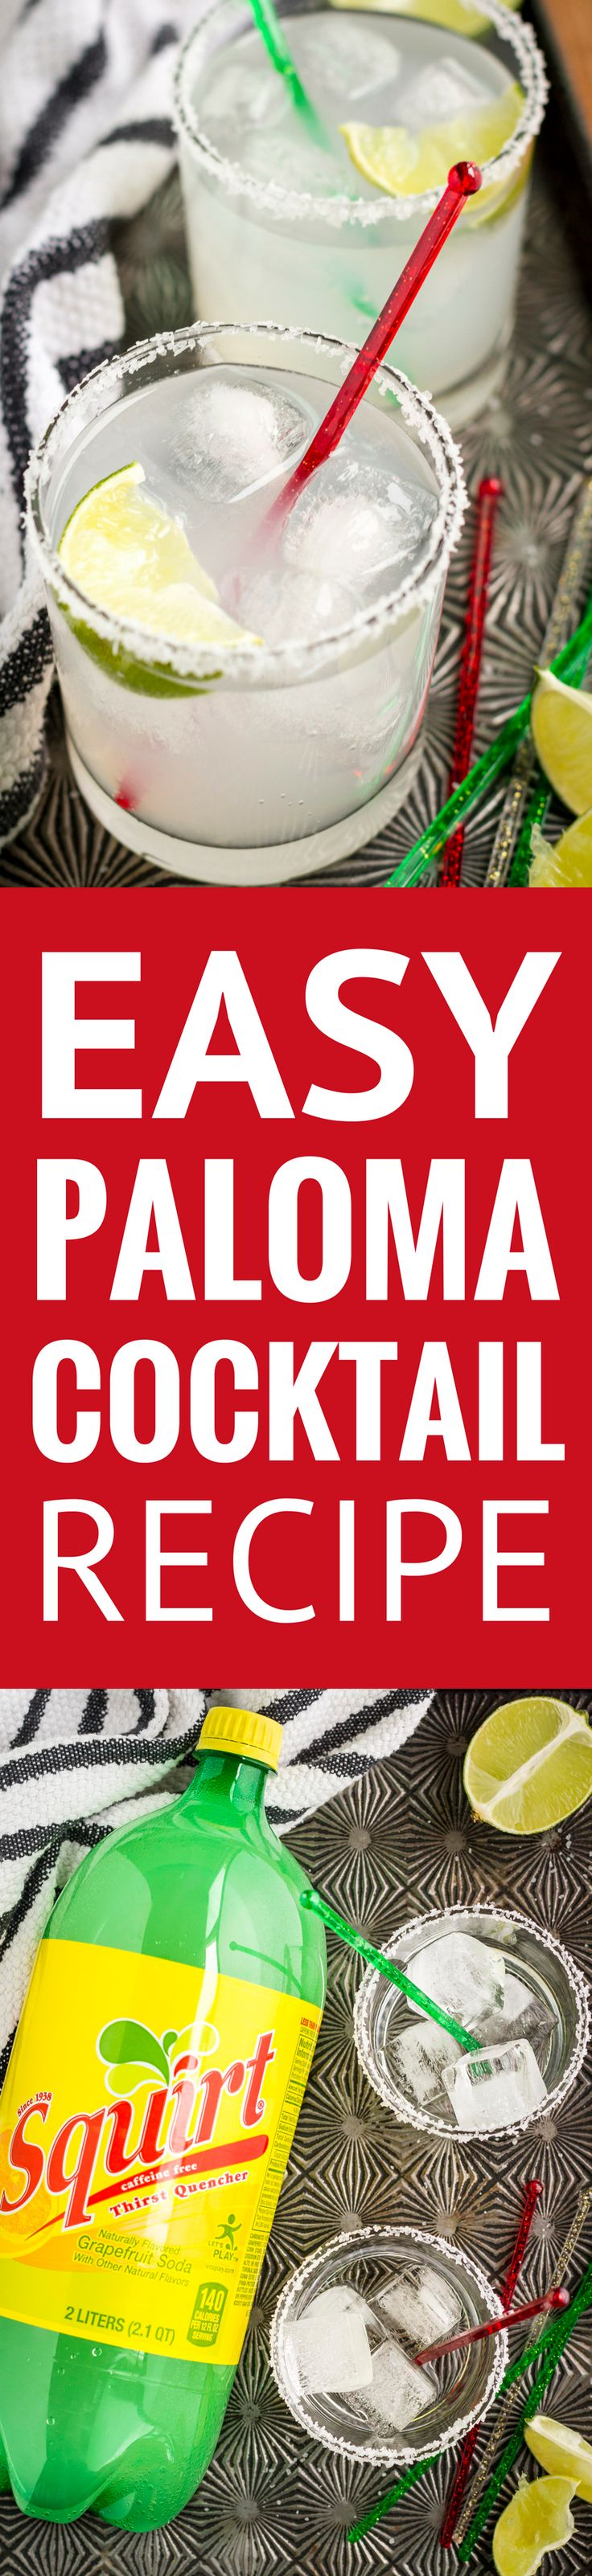 Easy Paloma Cocktail — a simple cocktail made with Squirt grapefruit soda, tequila, a squeeze of lime juice, and a sprinkle of salt. I like to call it the poor man's margarita, inexpensive and delicious! | paloma cocktail tequila | paloma cocktail recipes | paloma cocktail with squirt | paloma cocktail easy | find the recipe on unsophisticook.com #cocktail #drinkup #drinkrecipes #tequila